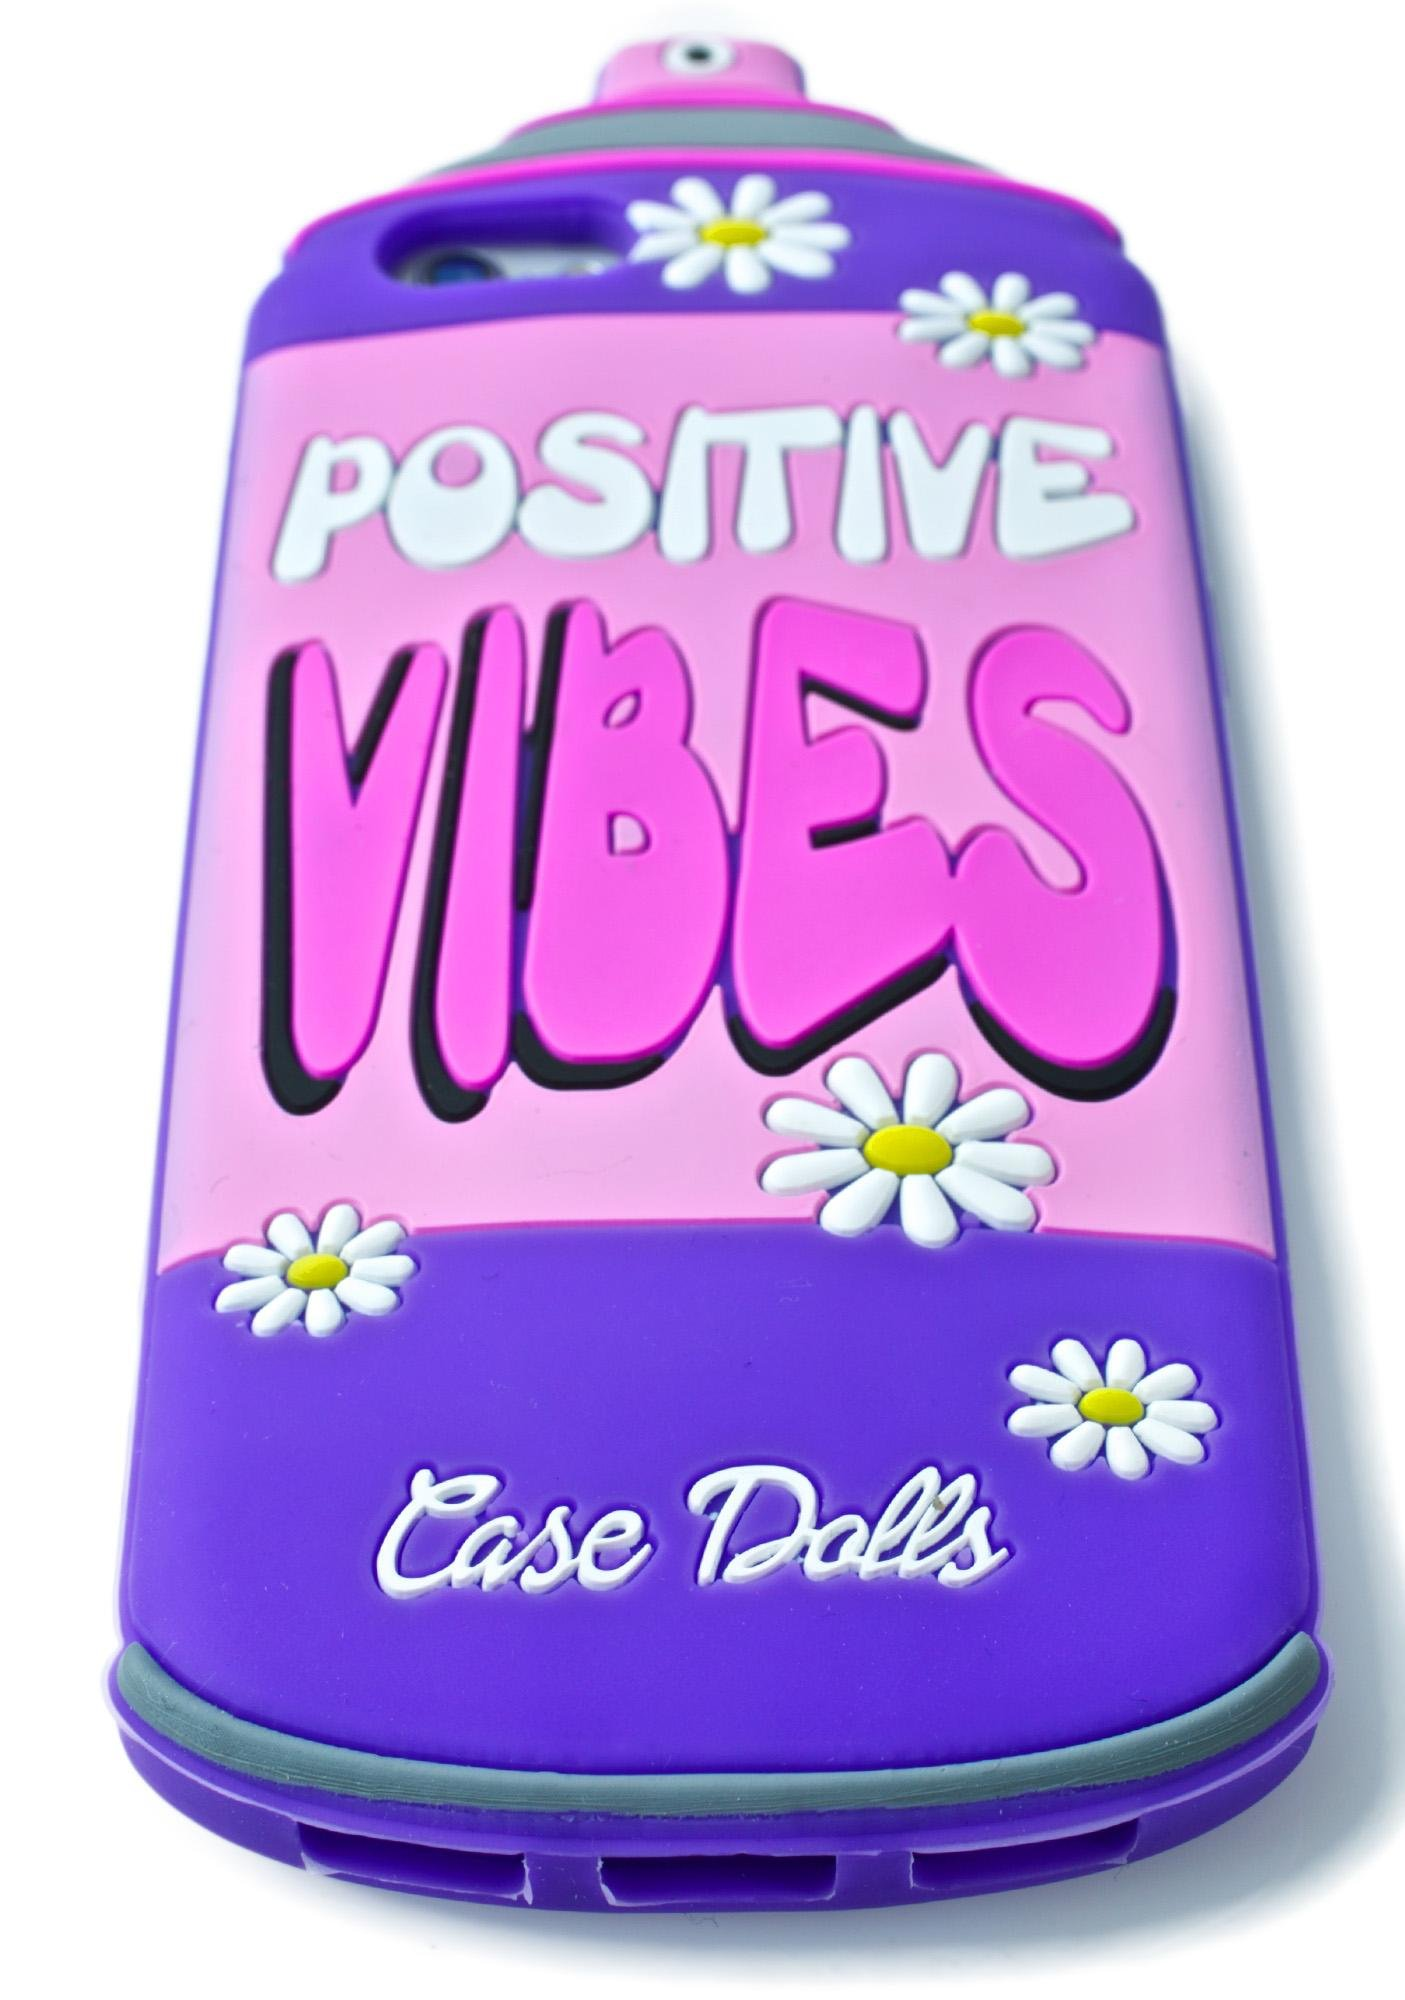 Case Dolls Positives Vibes iPhone Case